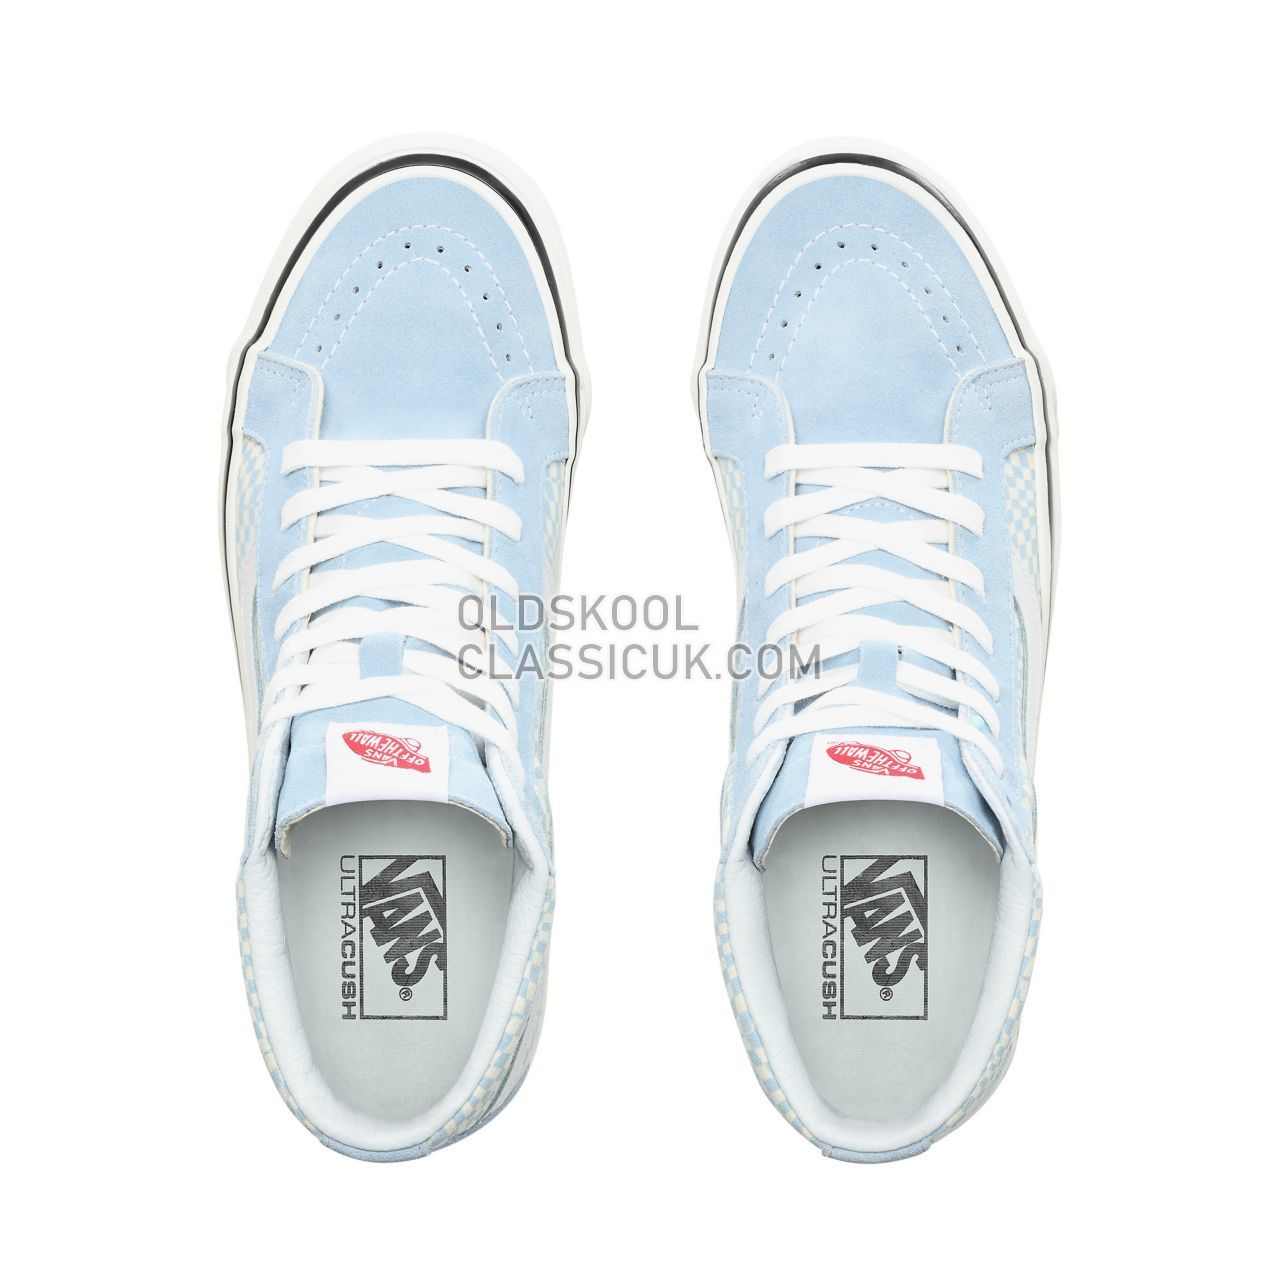 Vans Anaheim Factory Sk8-Hi 38 Dx Sneakers Mens (Anaheim Factory) Og Light Blue/White/Warp Check VN0A38GFVSG Shoes